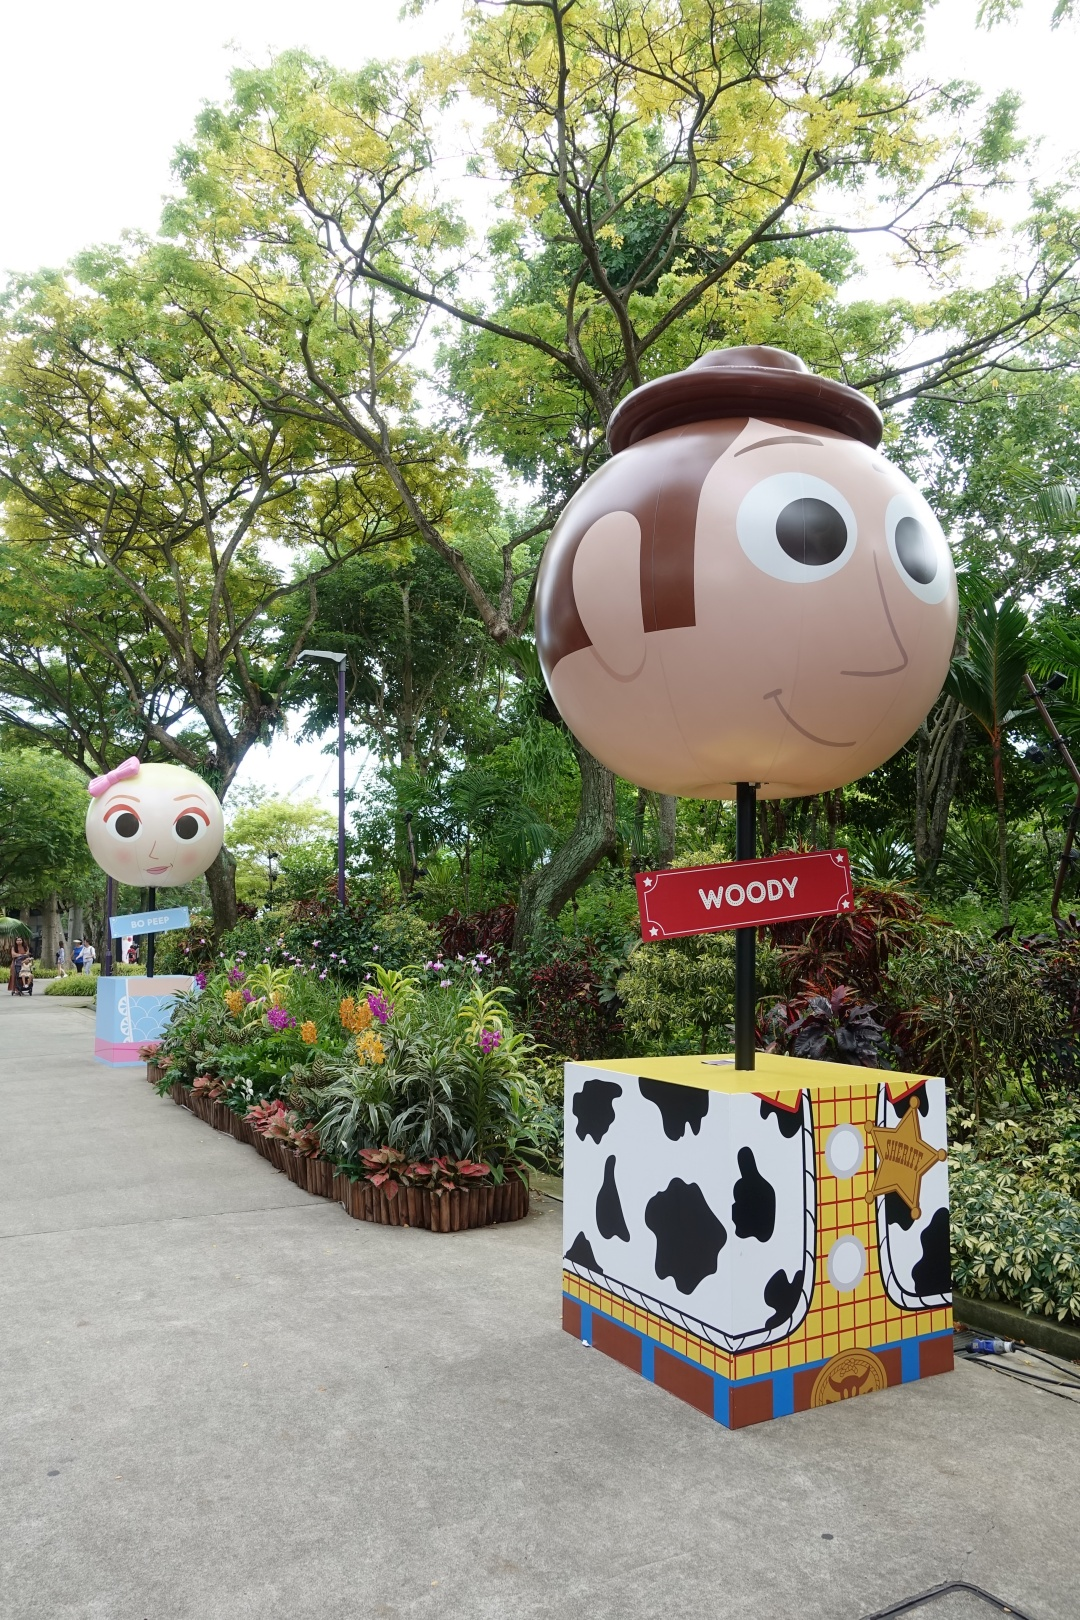 Woody and Bo Peep Toy Story theme balloon at Children's Festival | joanne-khoo.com